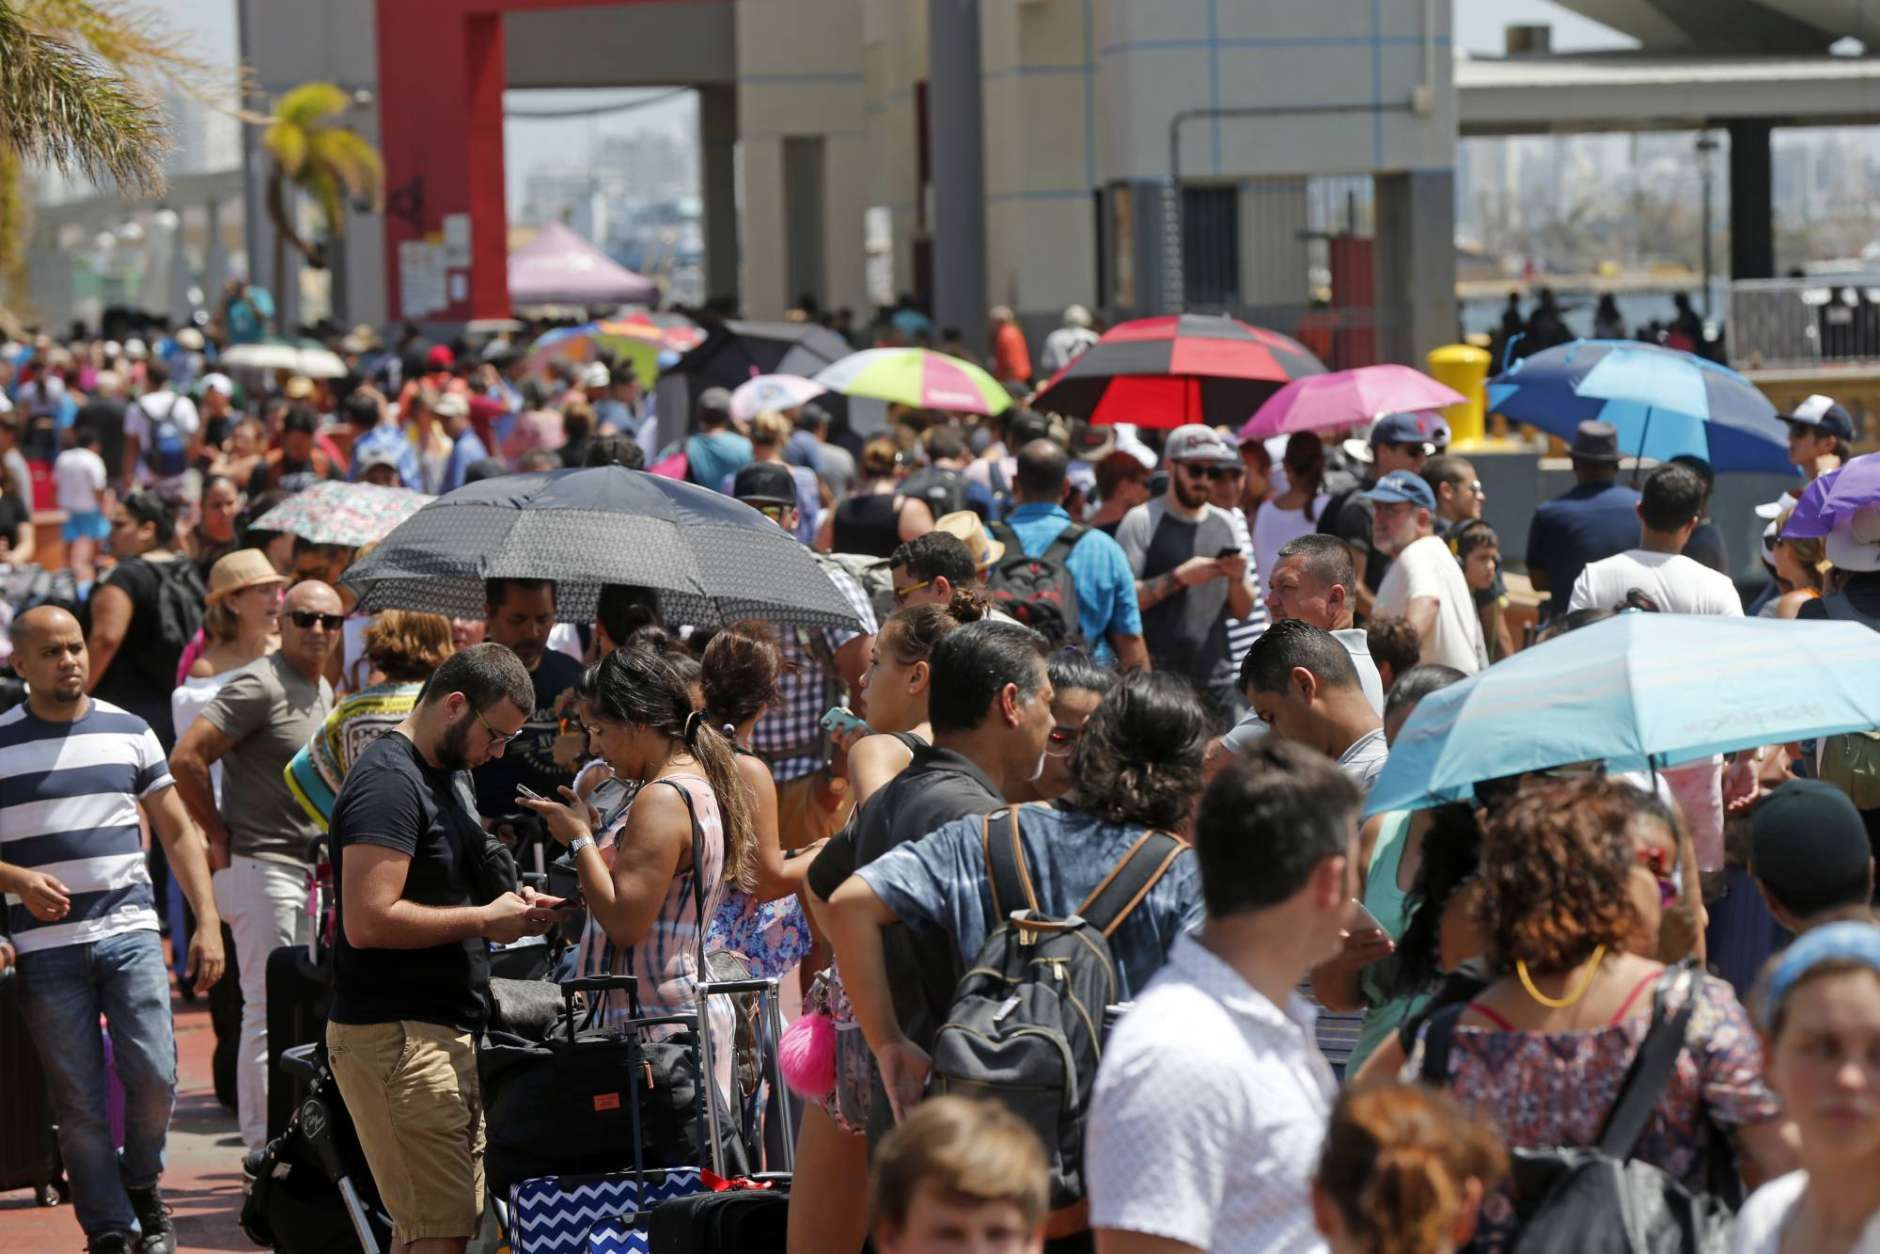 Thousands of people evacuating Puerto Rico line up to get on a cruise ship in the aftermath of Hurricane Maria in San Juan, Puerto Rico, Thursday, Sept. 28, 2017. The aftermath of the powerful storm has resulted in a near-total shutdown of the U.S. territory's economy that could last for weeks and has many people running seriously low on cash and worrying that it will become even harder to survive on this storm-ravaged island. (AP Photo/Gerald Herbert)